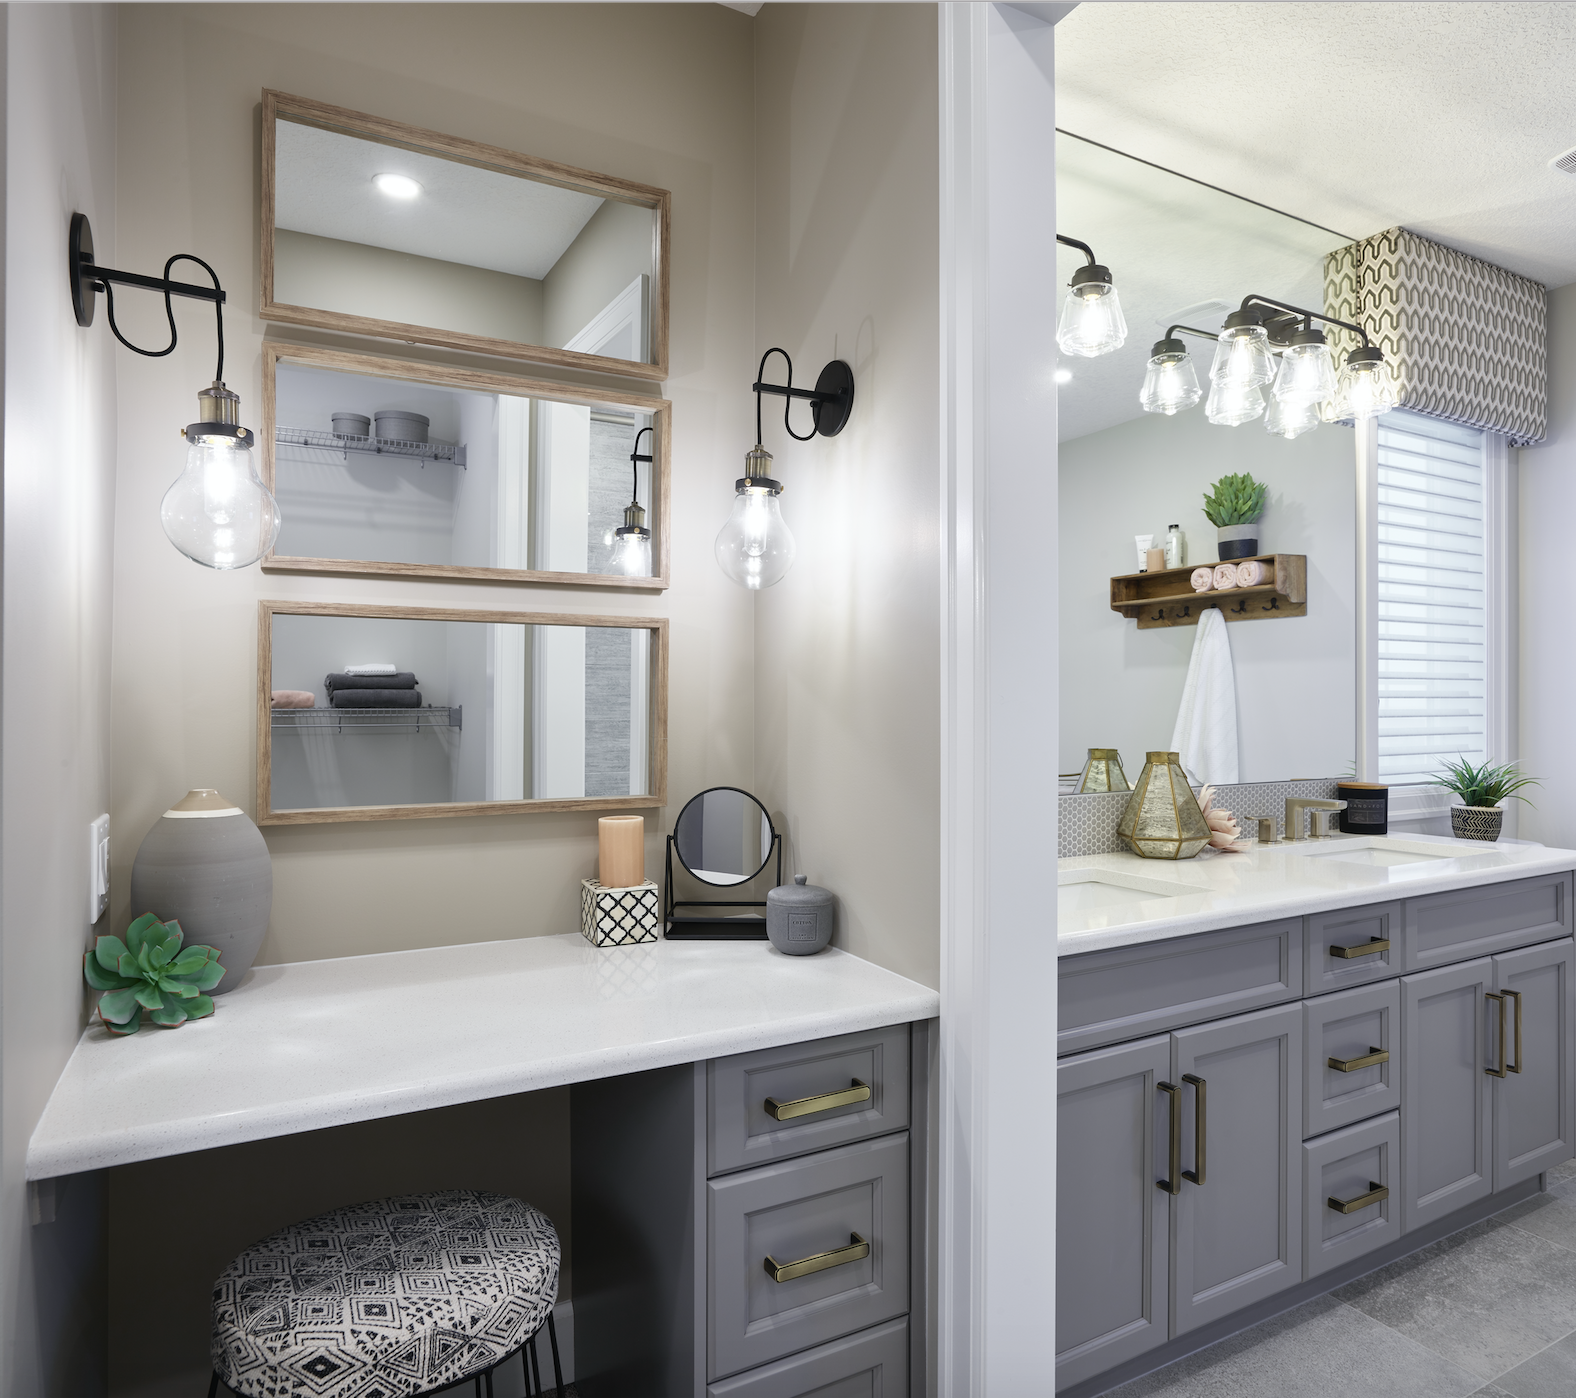 Design Your Bathroom With A Separate Vanity Area For Additional